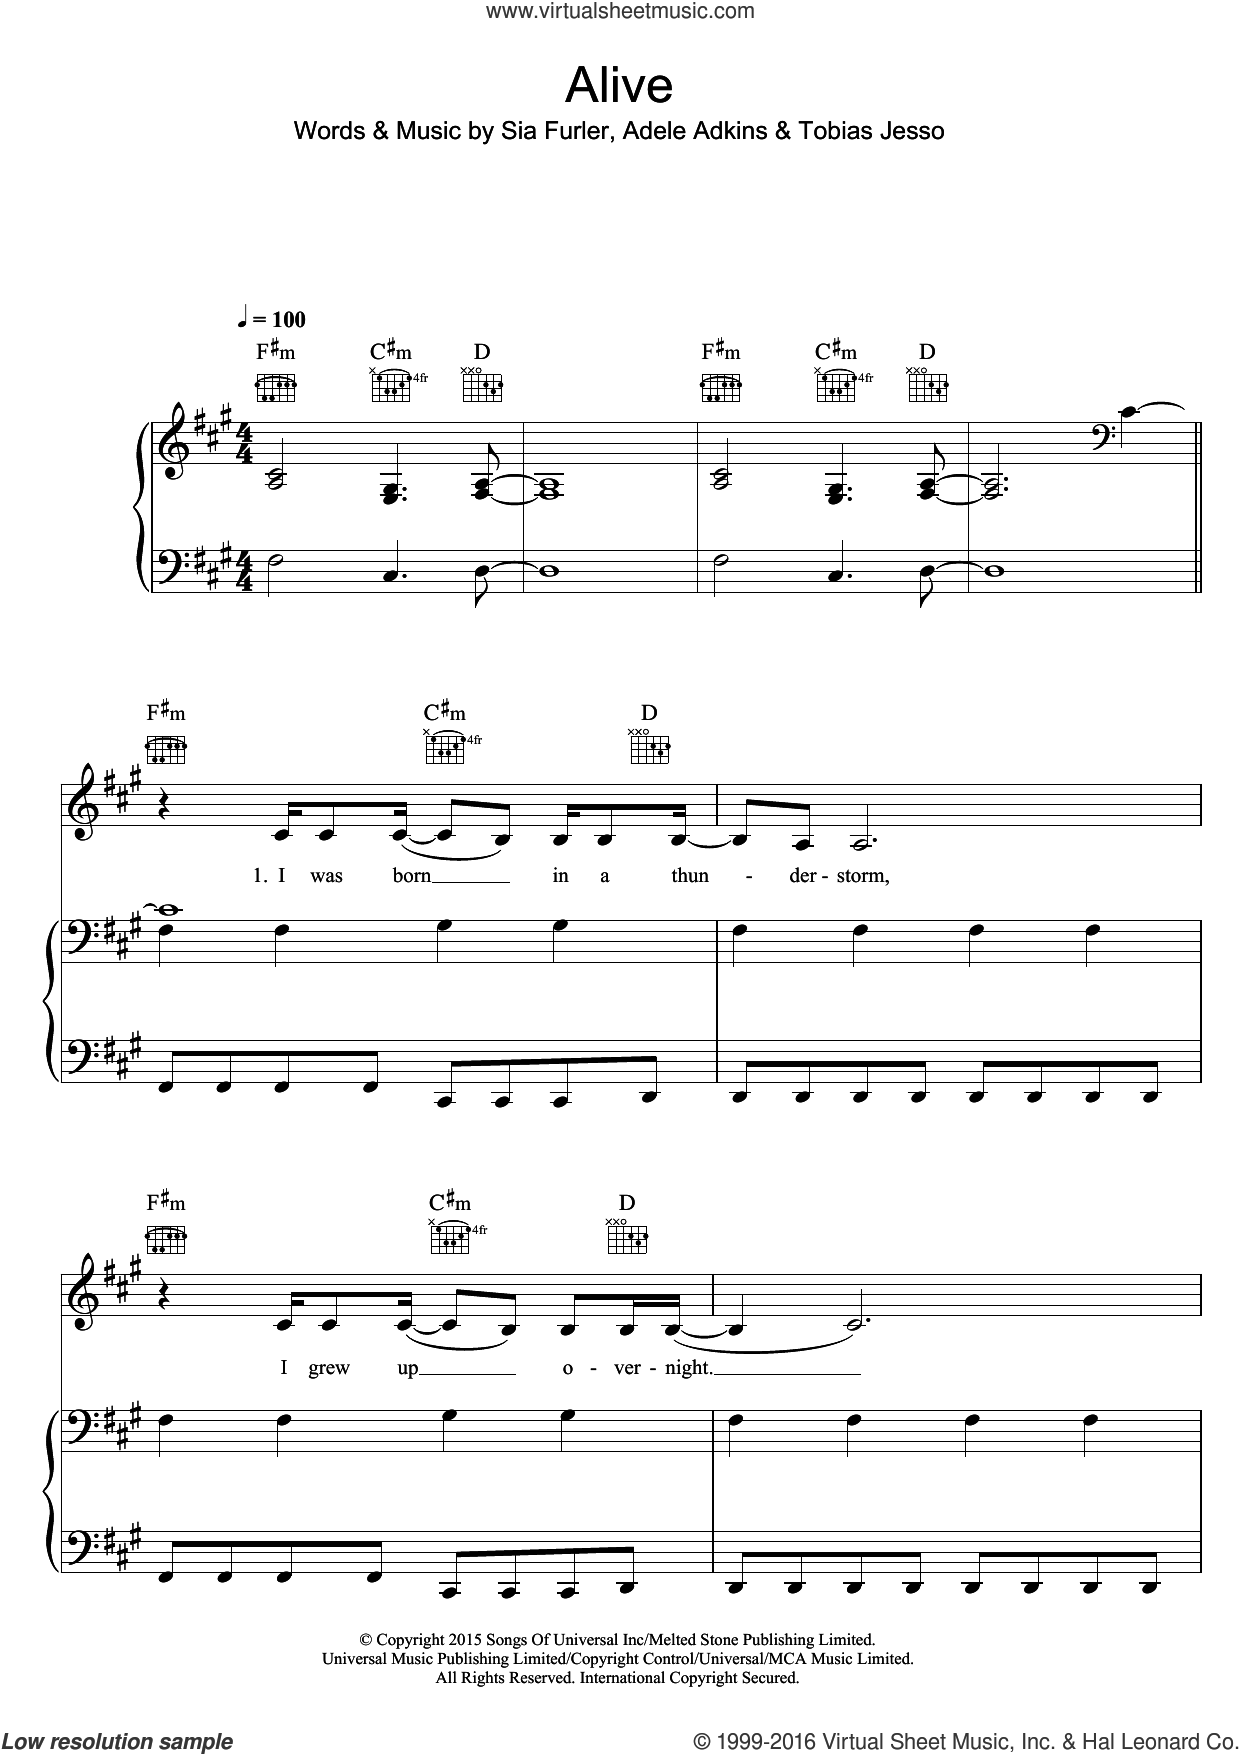 Alive sheet music for voice, piano or guitar by Sia, Adele Adkins, Sia Furler and Tobias Jesso, intermediate skill level